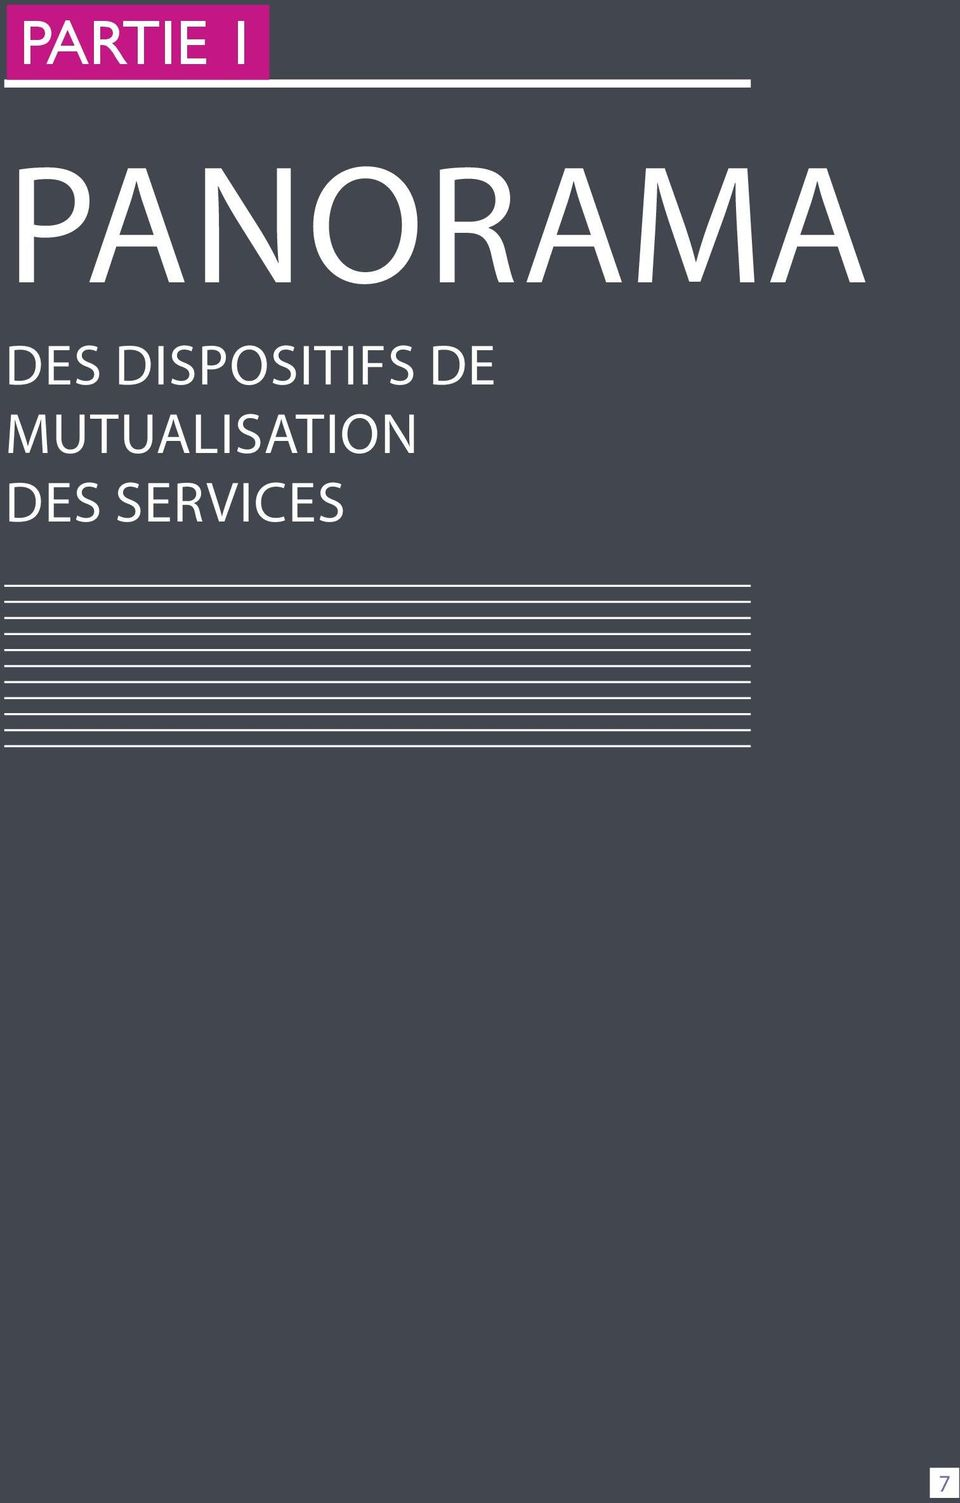 DISPOSITIFS DE